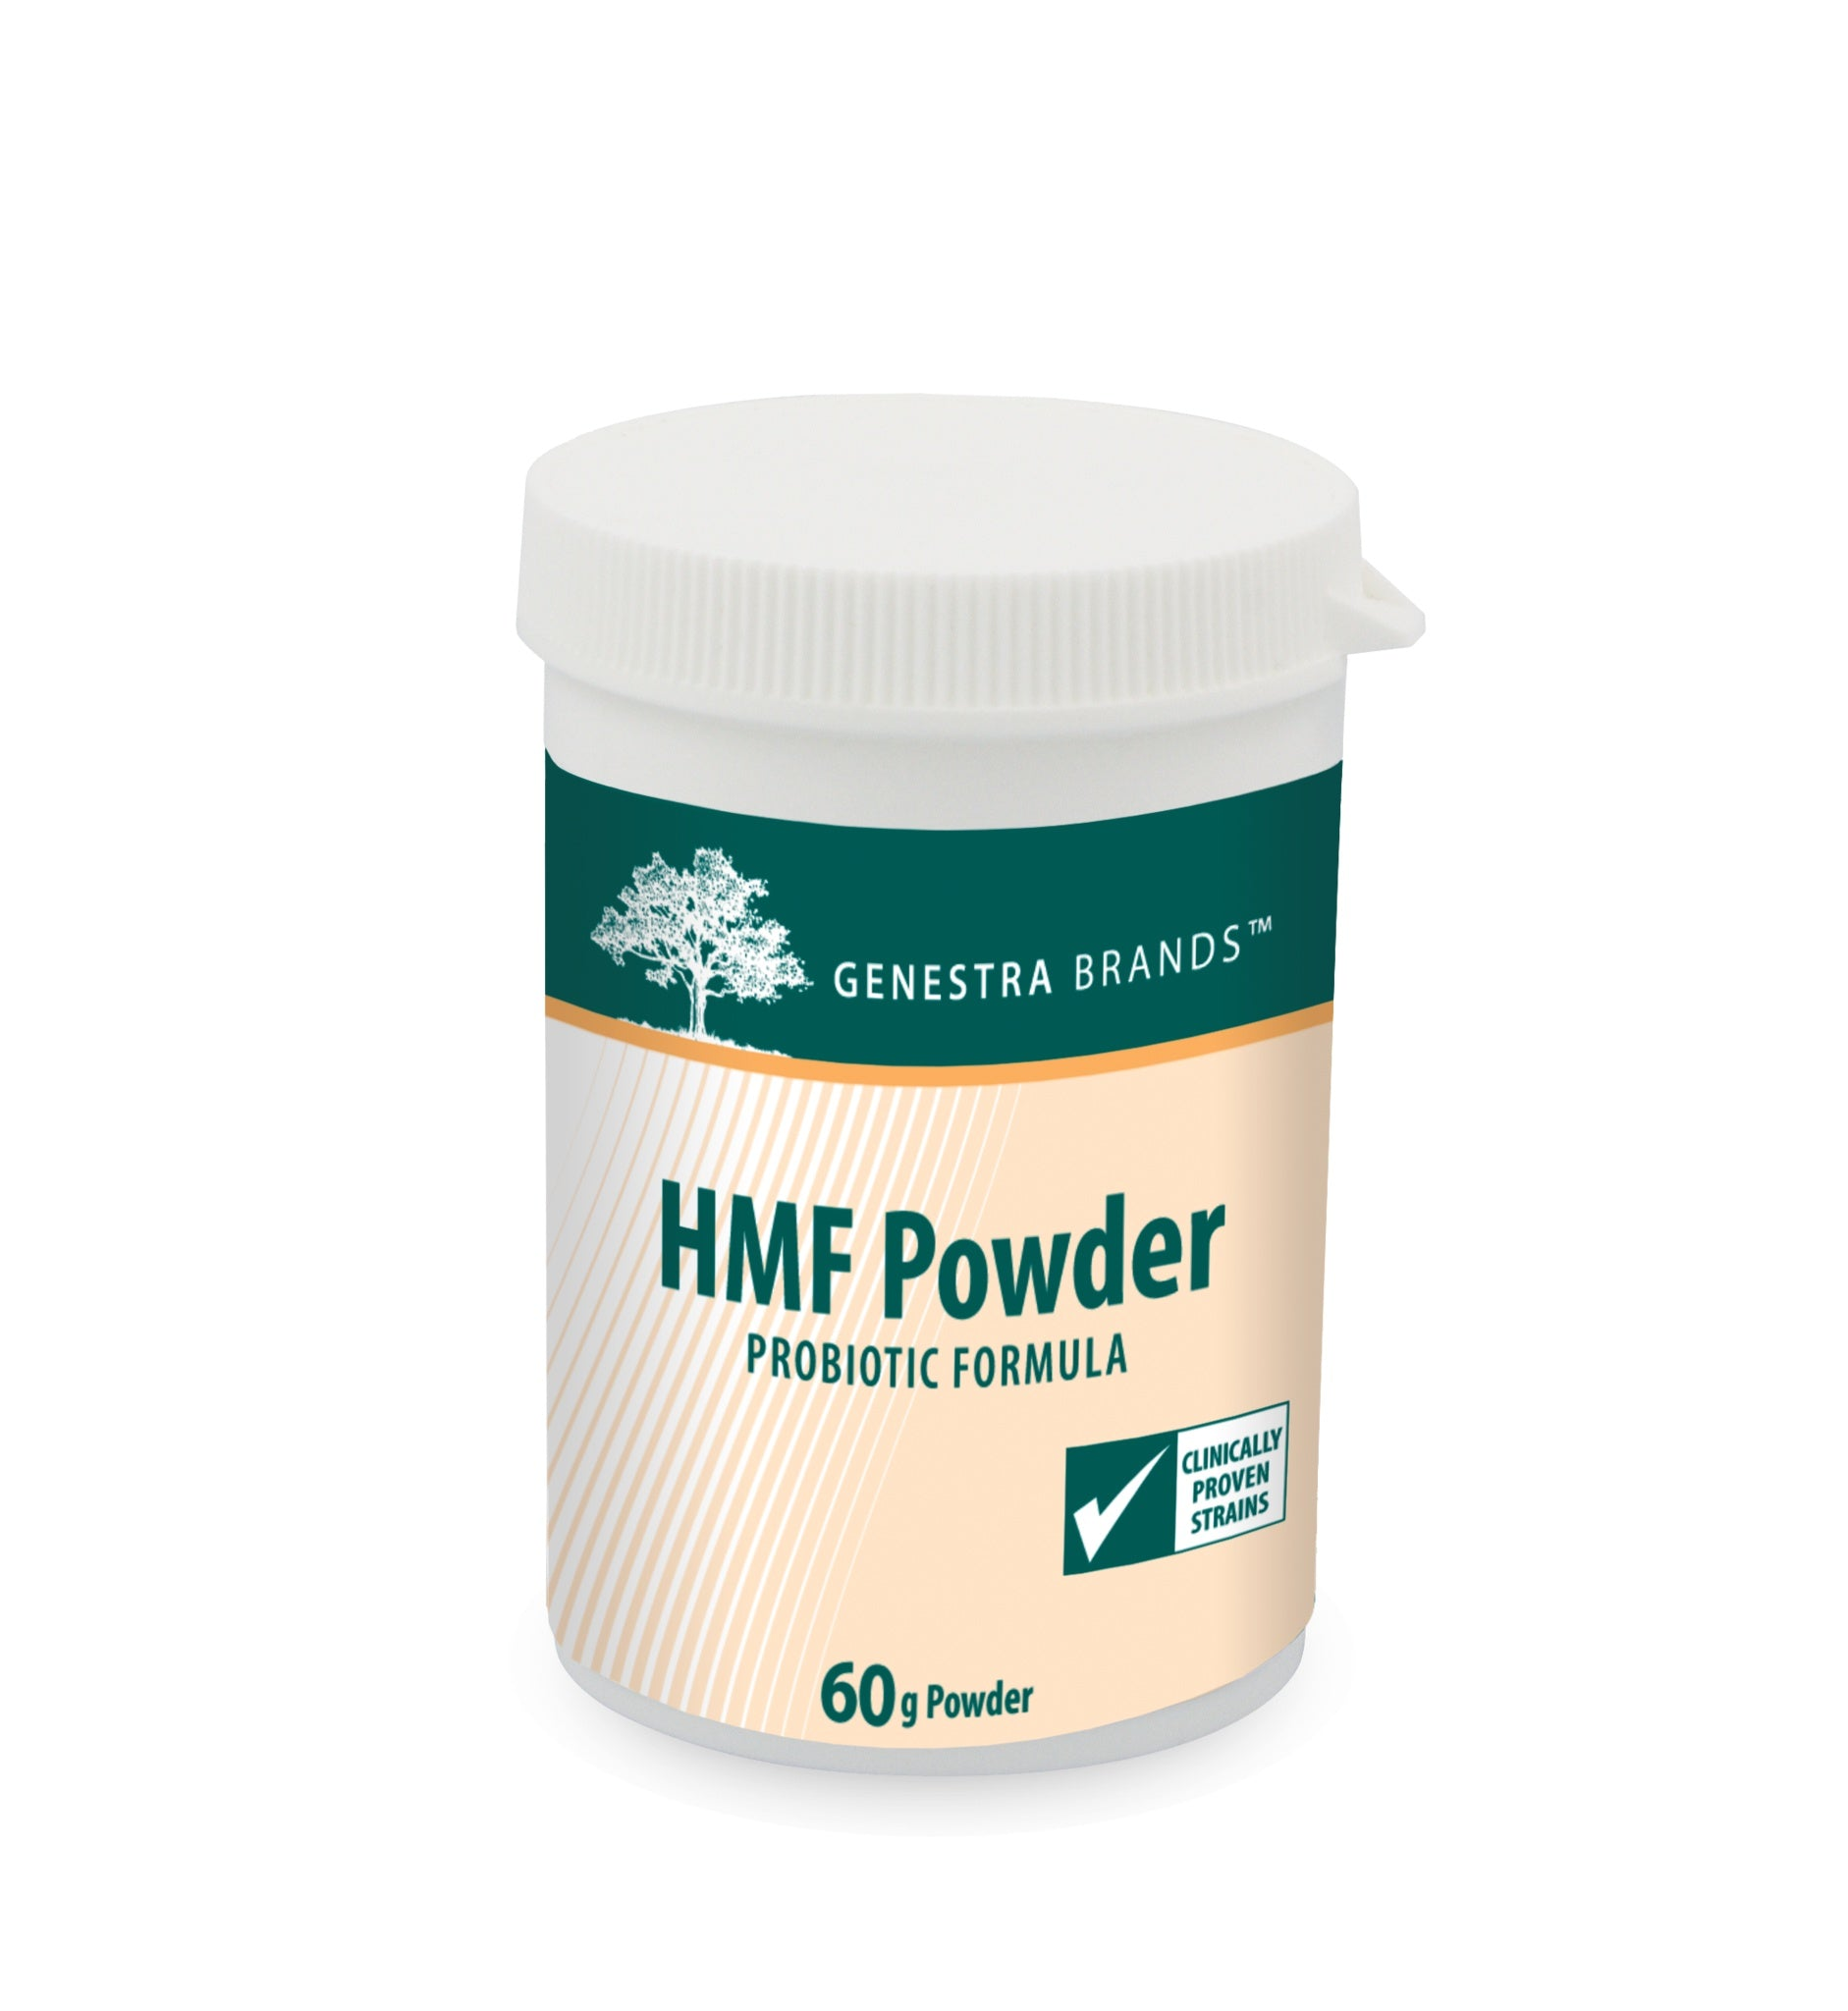 Supplements & Vitamins - Genestra - HMF Powder, 60g